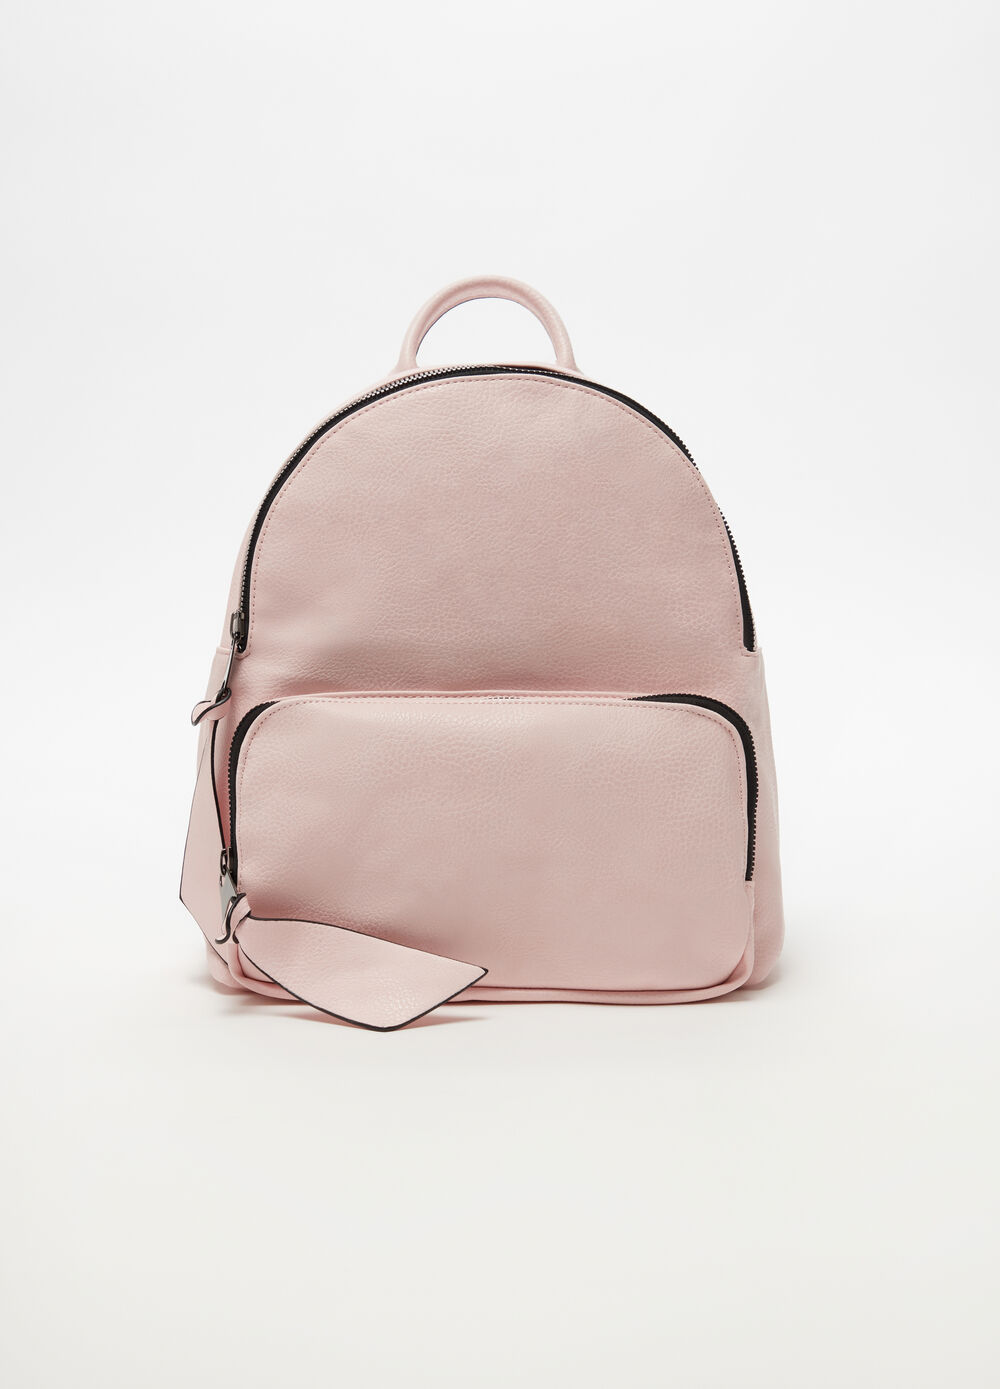 Leather-look backpack with zip and pocket